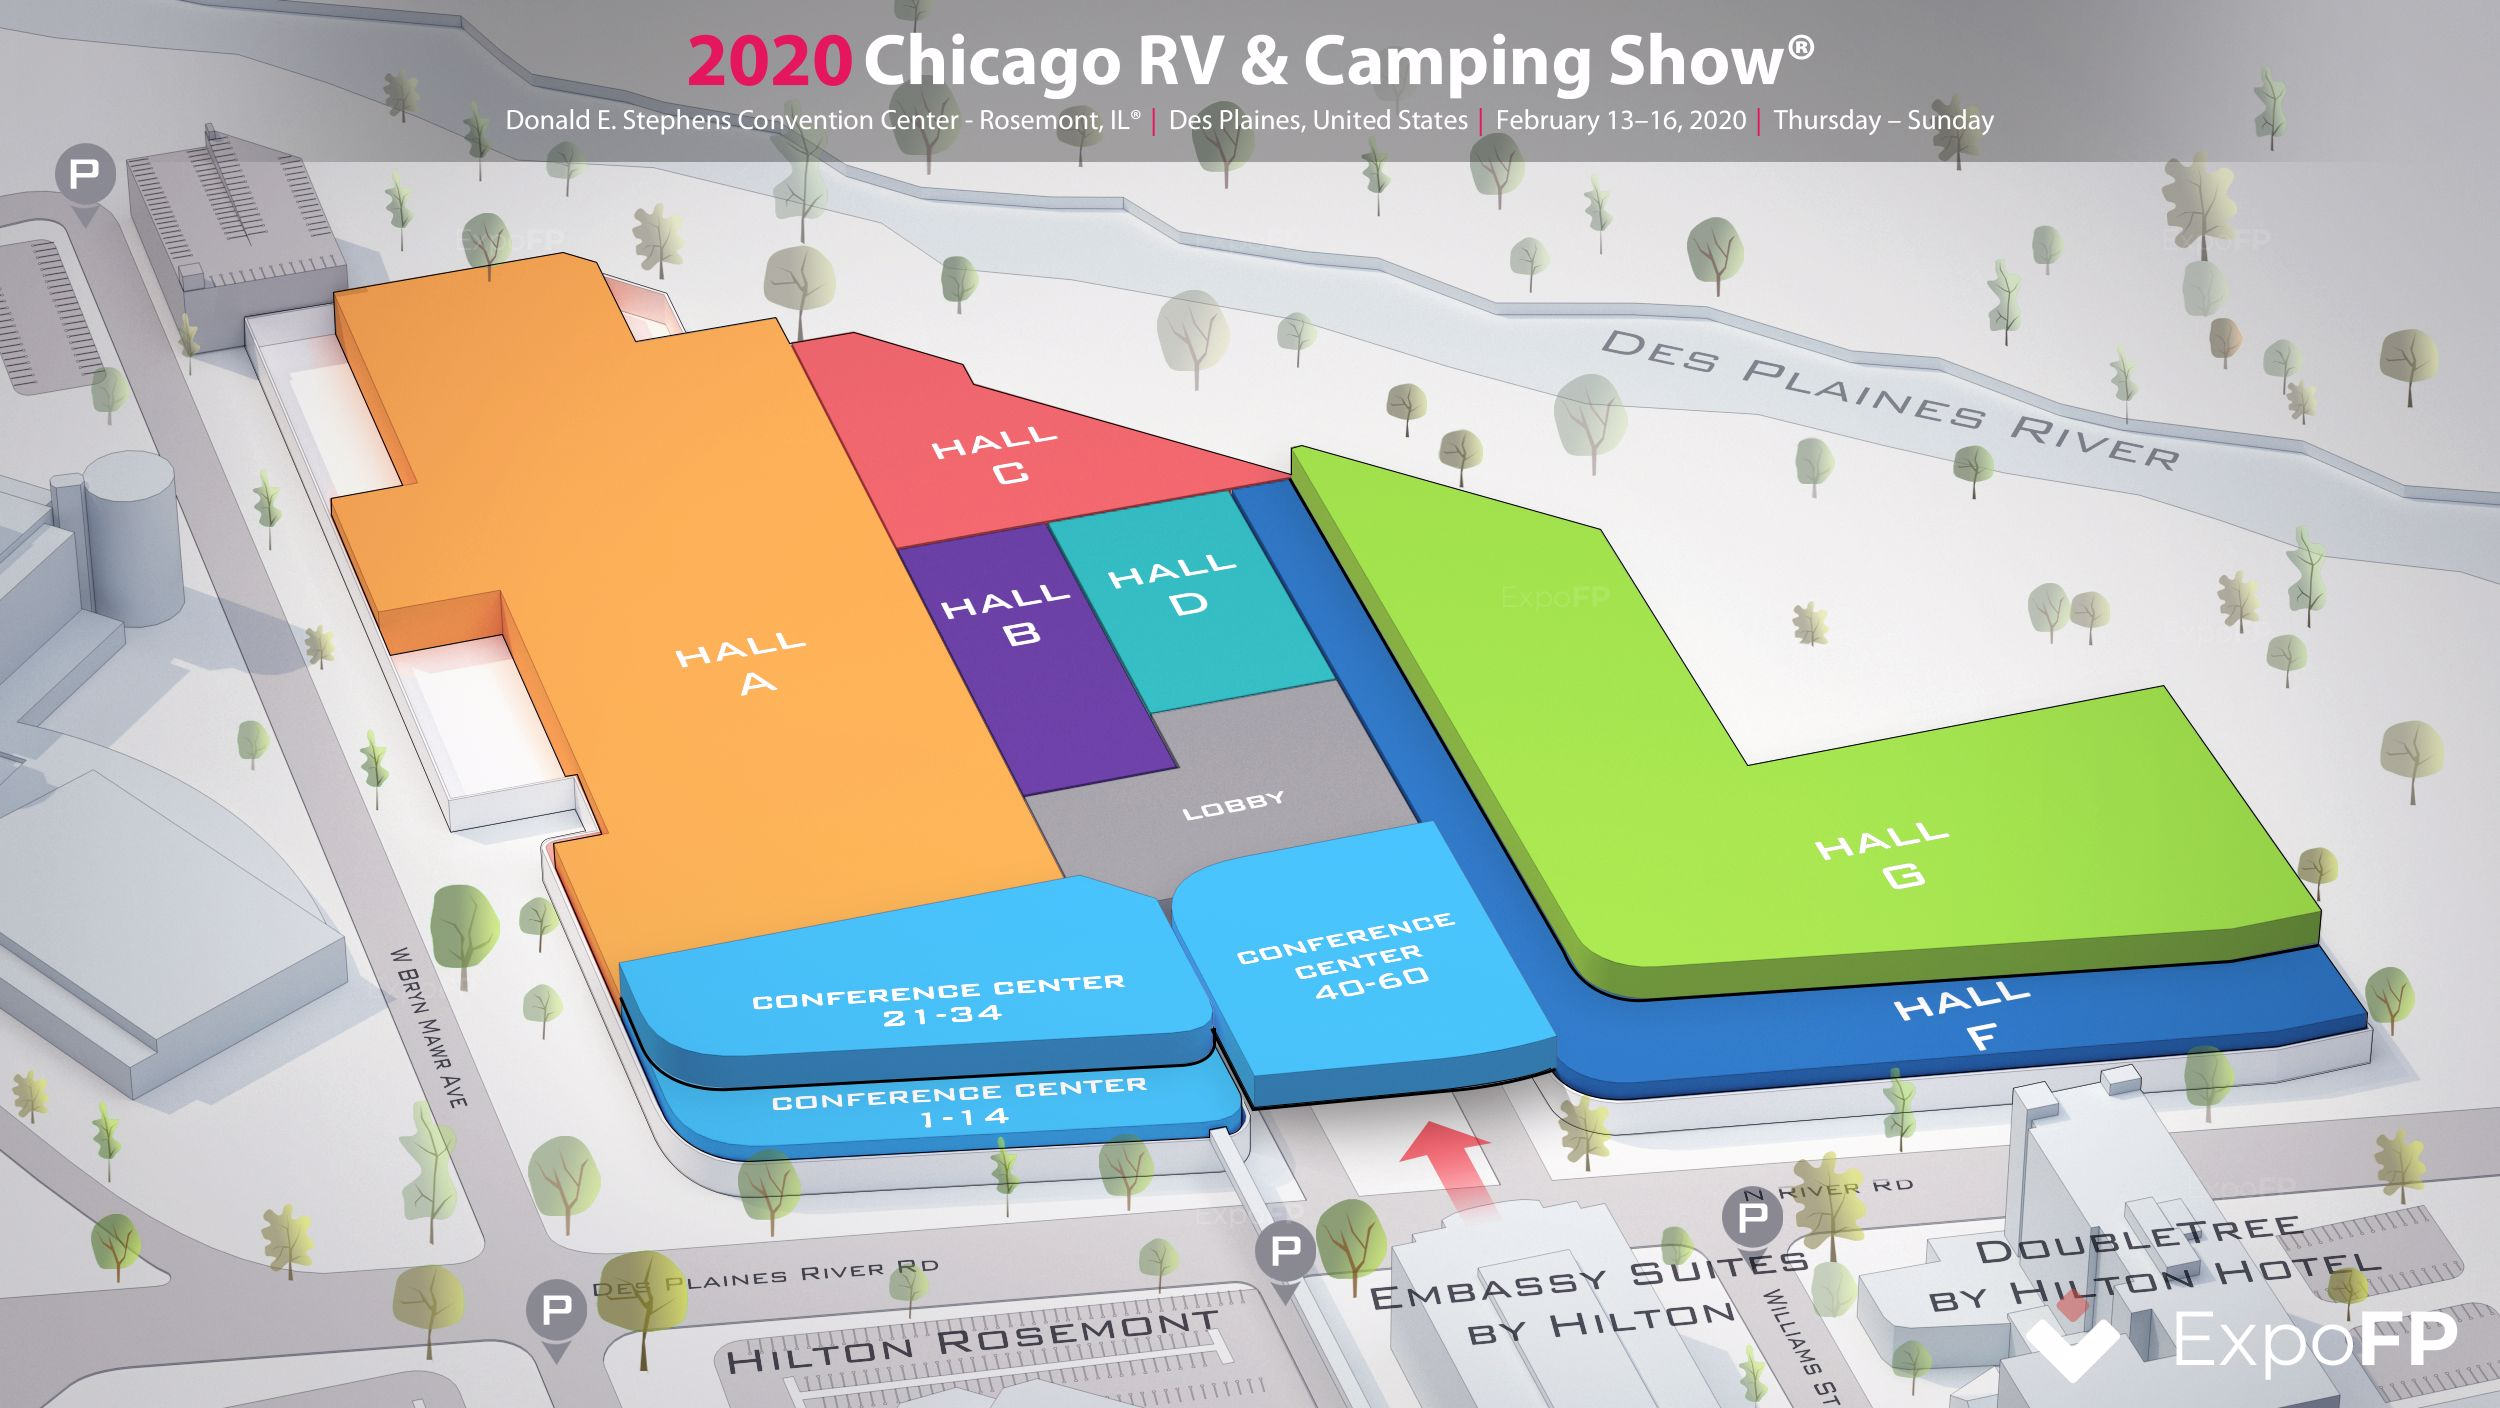 Las Vegas Rv Show 2020.Chicago Rv Camping Show 2020 In Donald E Stephens